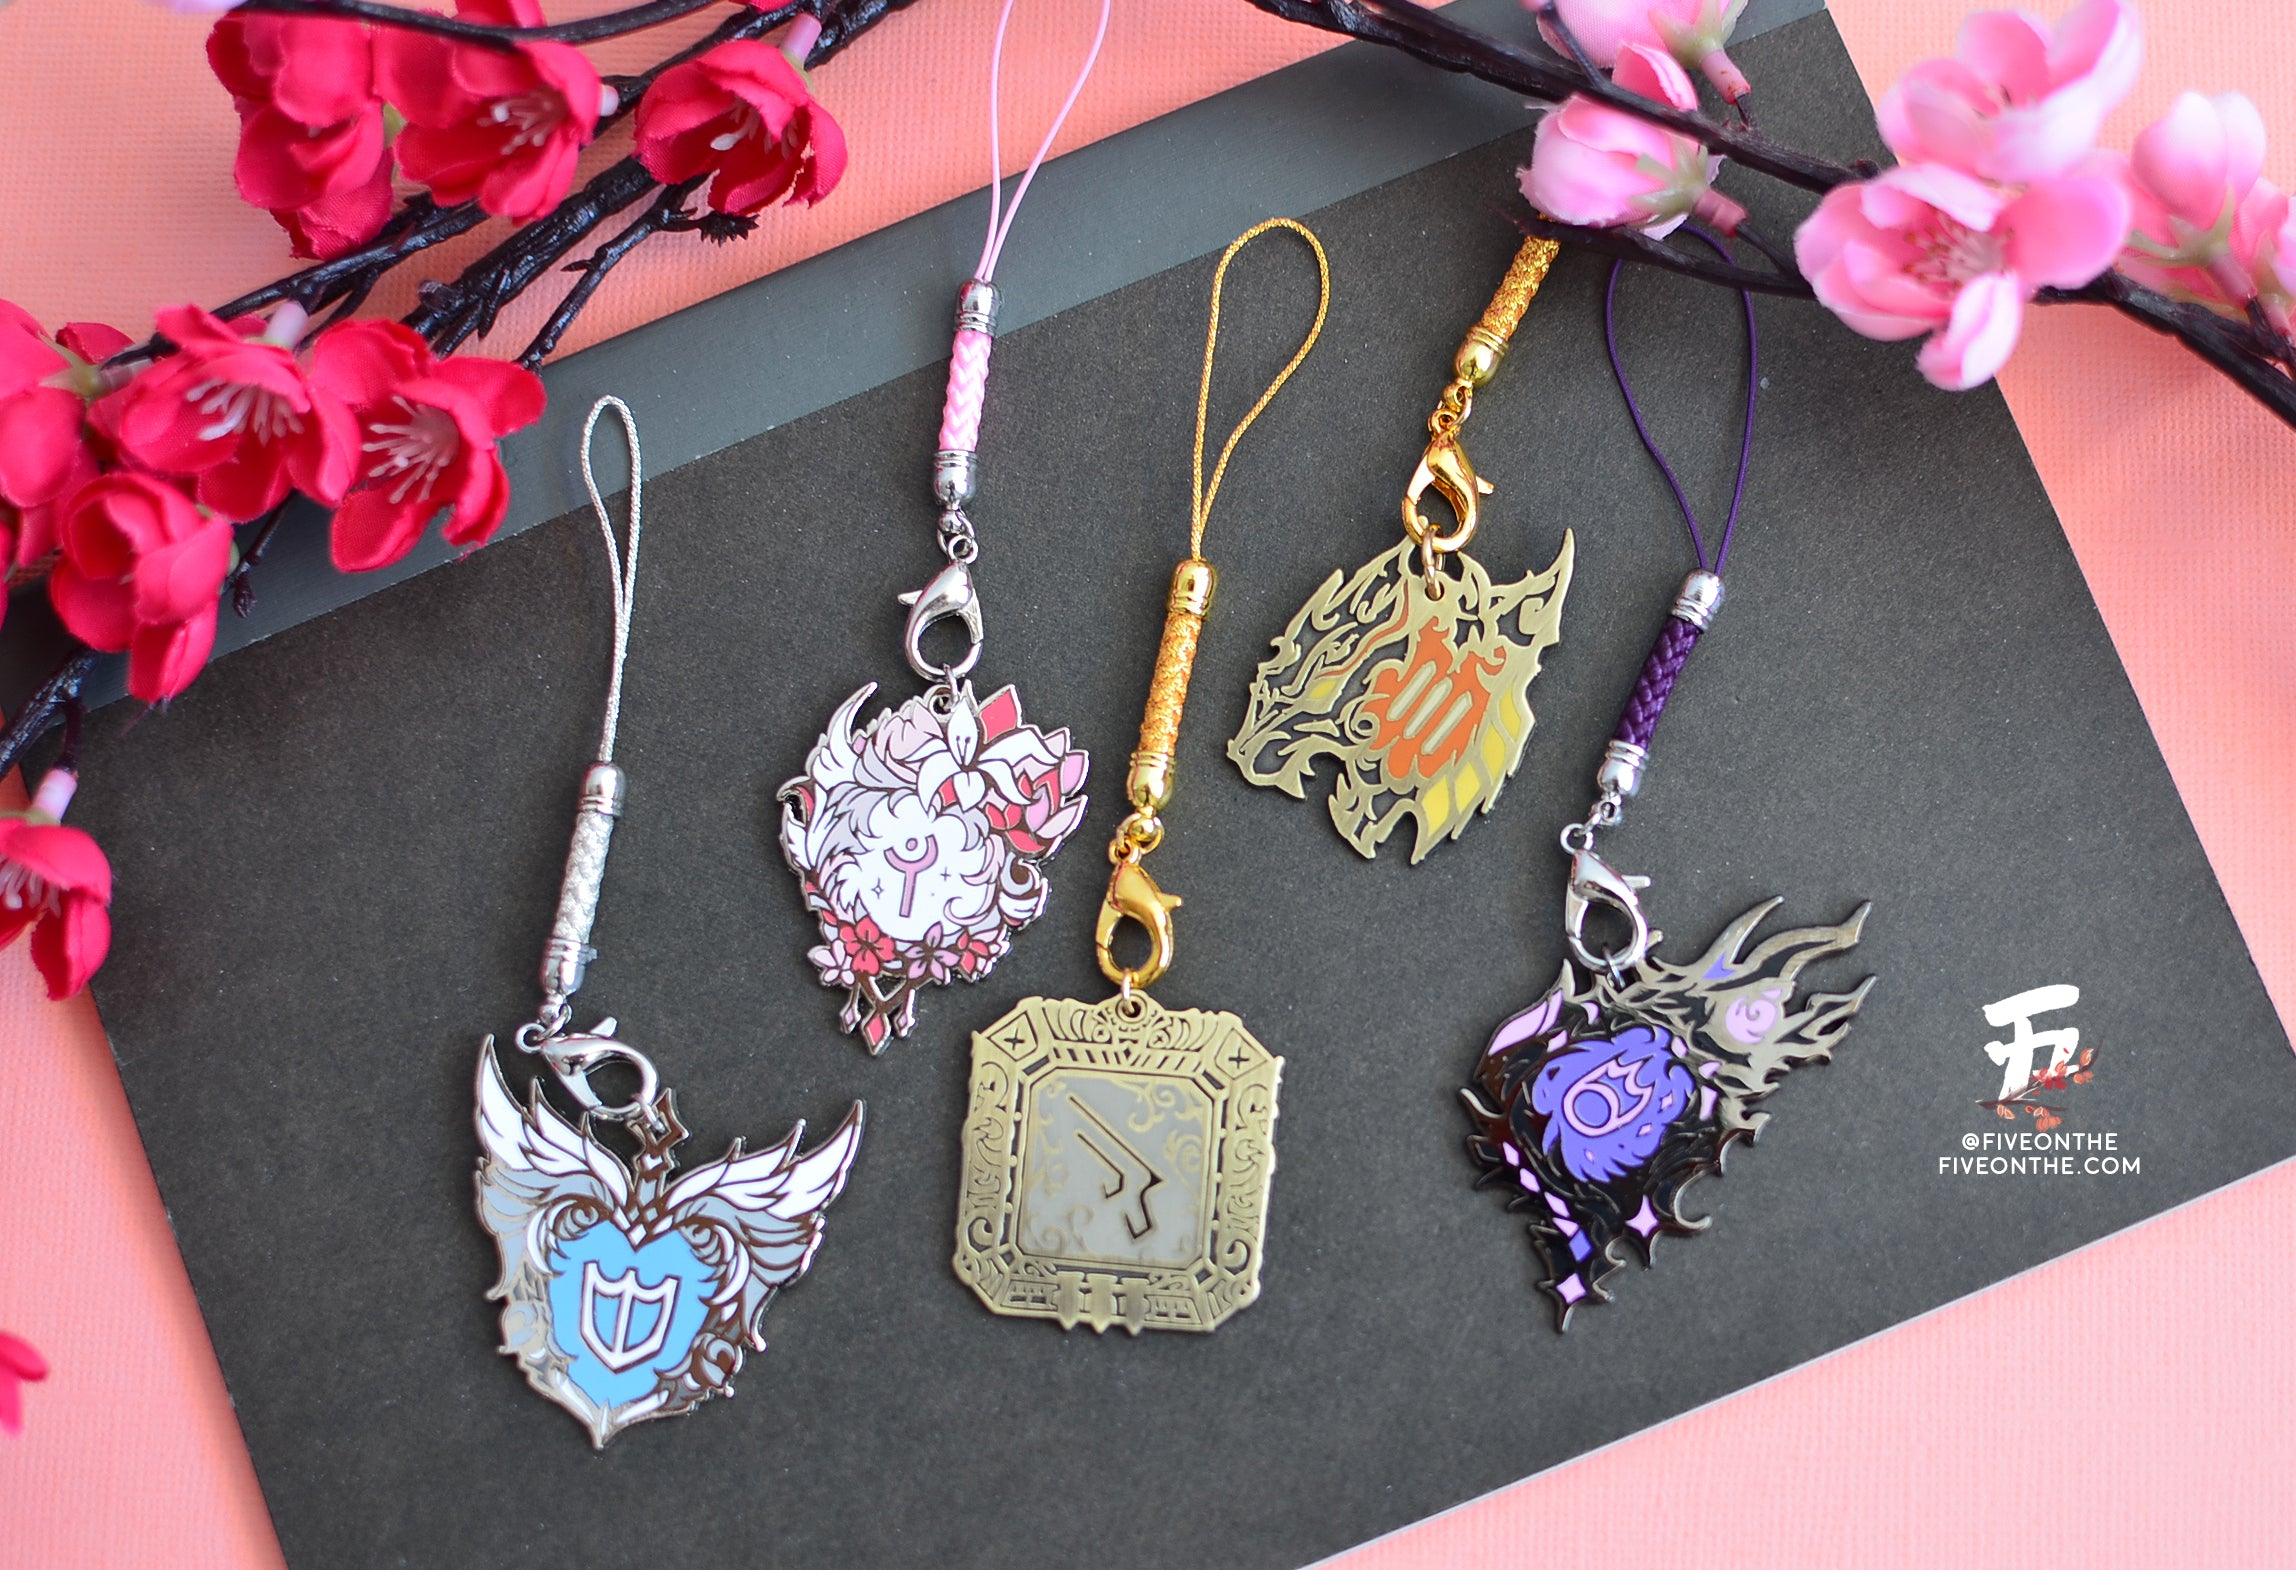 White Mage ✦ FFXIV Soul Crystal Job Charms